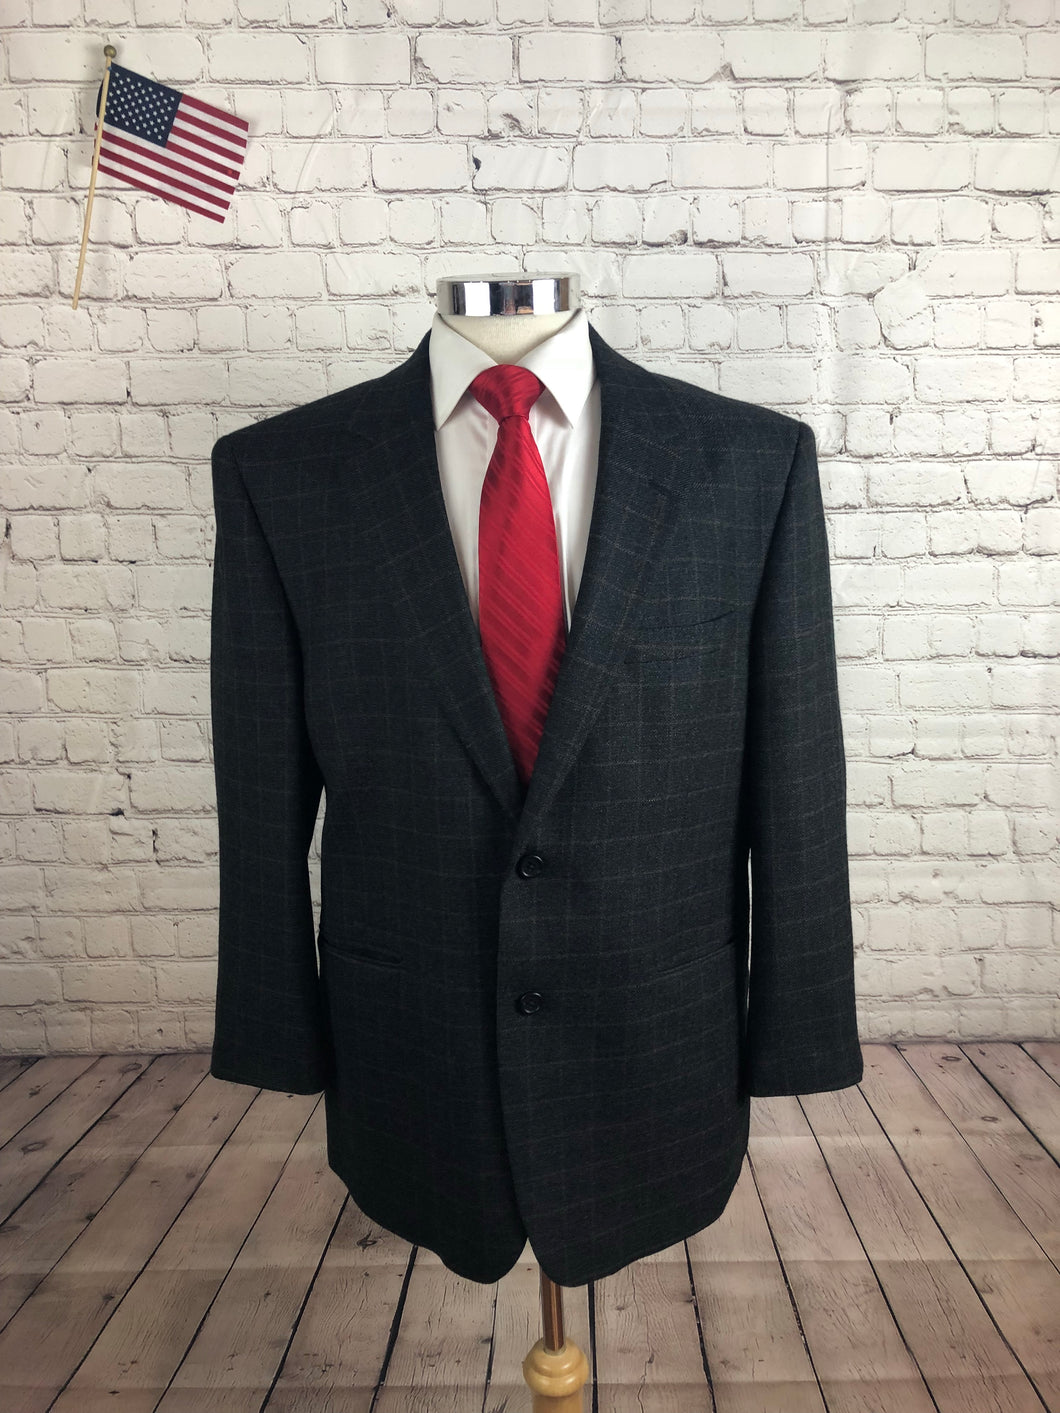 Jos. A. Bank Men's Gray Plaid 2 Button Blazer Sport Coat Suit Jacket Size 44S $435!!! - SUIT CHARITY OUTLET